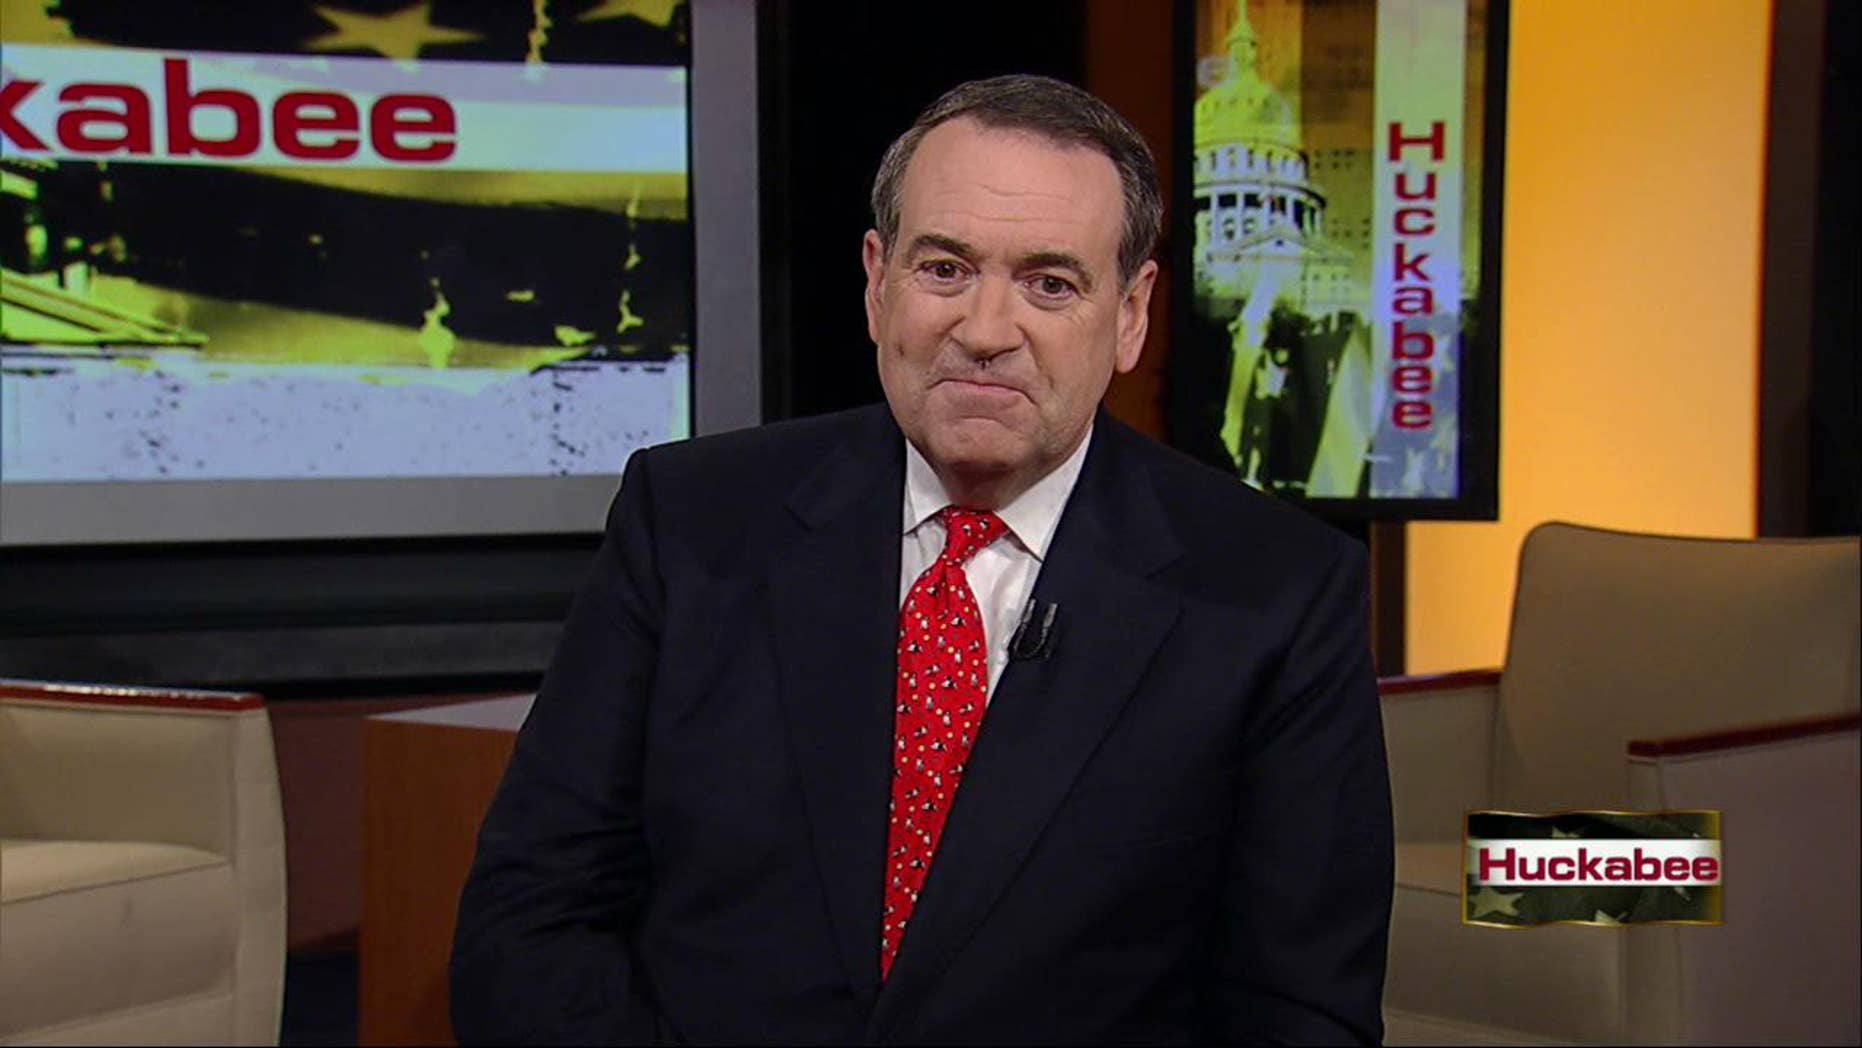 Saturday: On his Fox News Channel program 'Huckabee,' former Arkansas Gov. Mike Huckabee announced that he will not seek a bid in the 2012 presidential race.